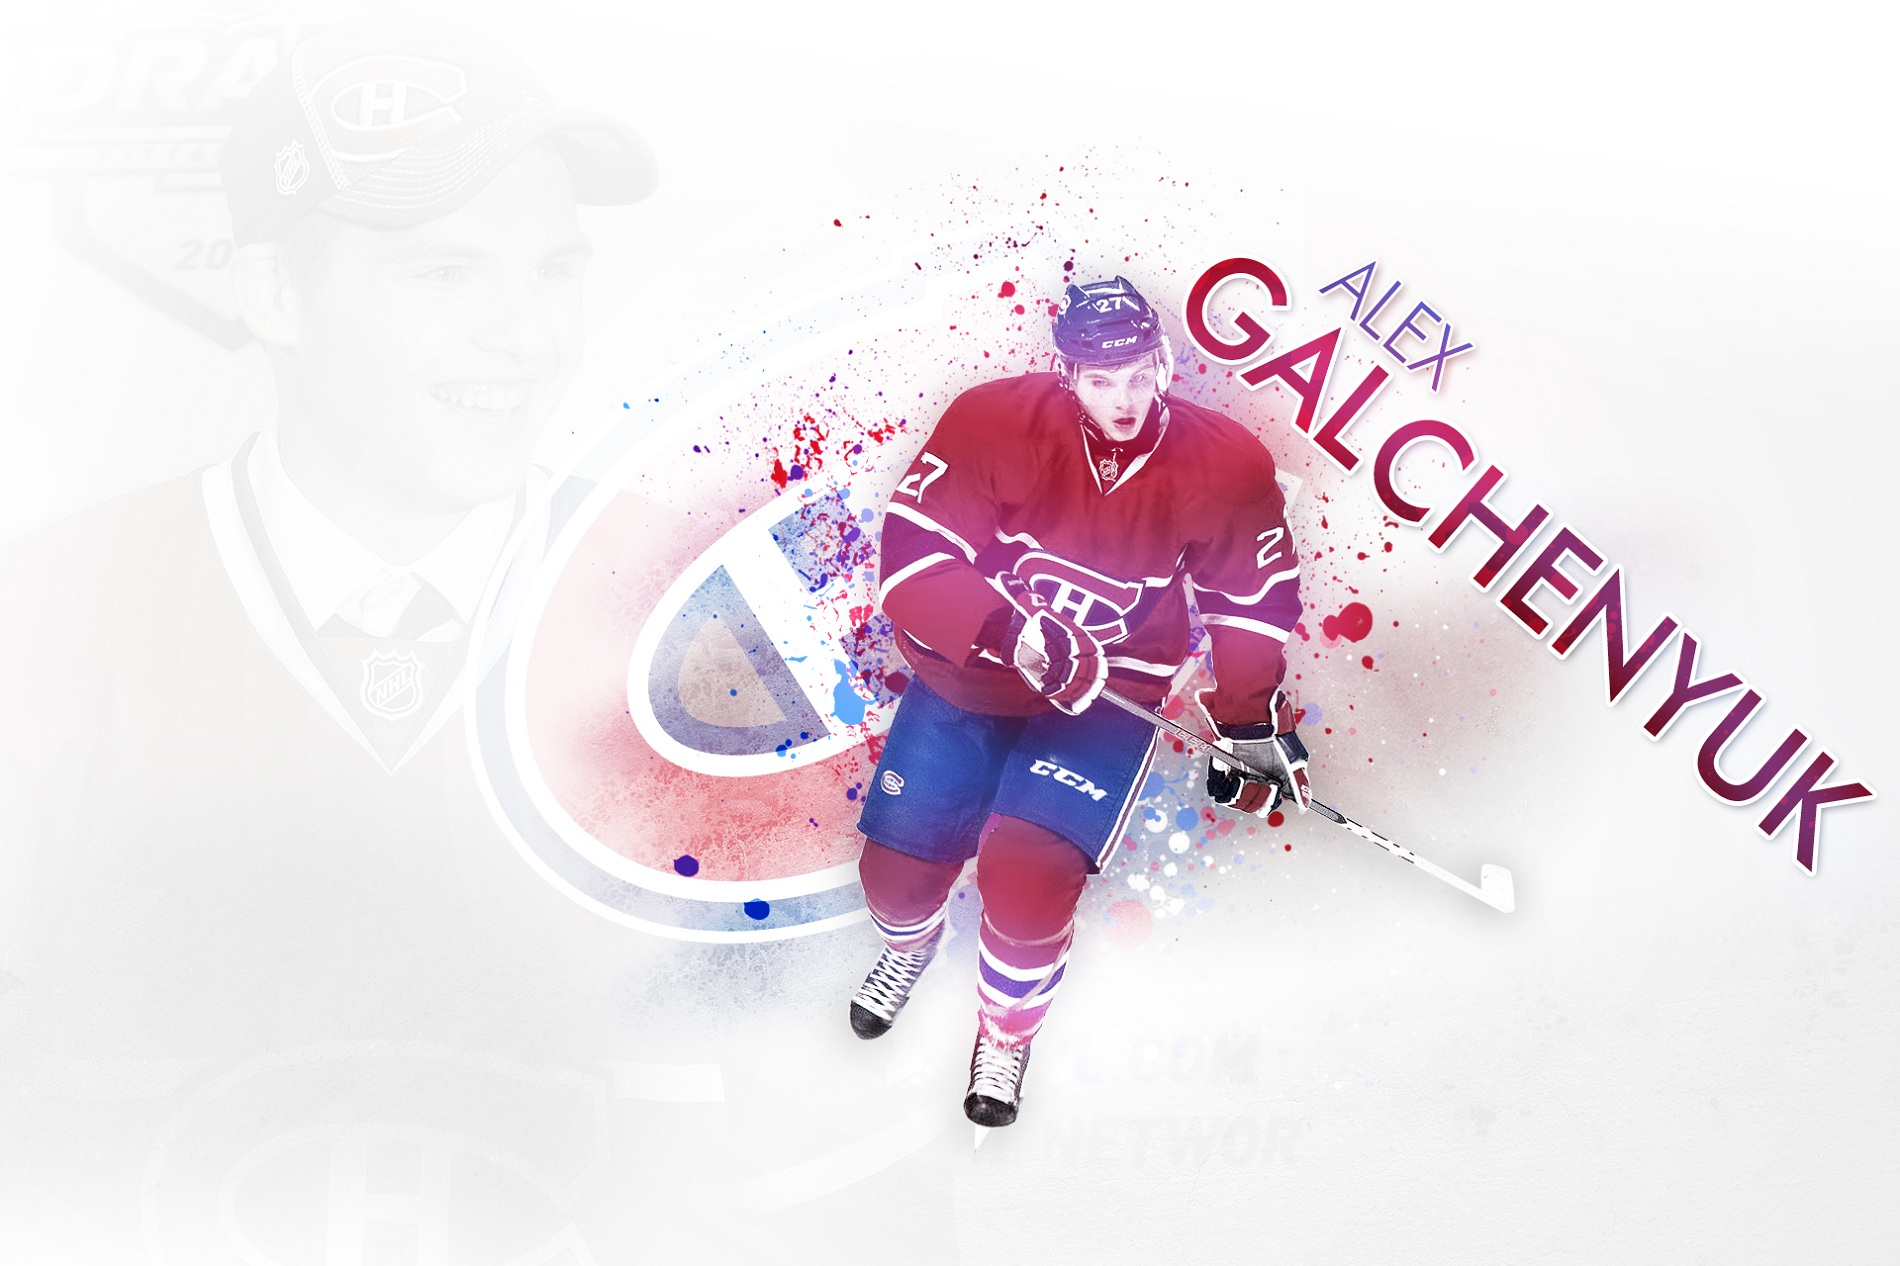 Montreal Canadiens wallpapers Montreal Canadiens background   Page 2 1900x1266